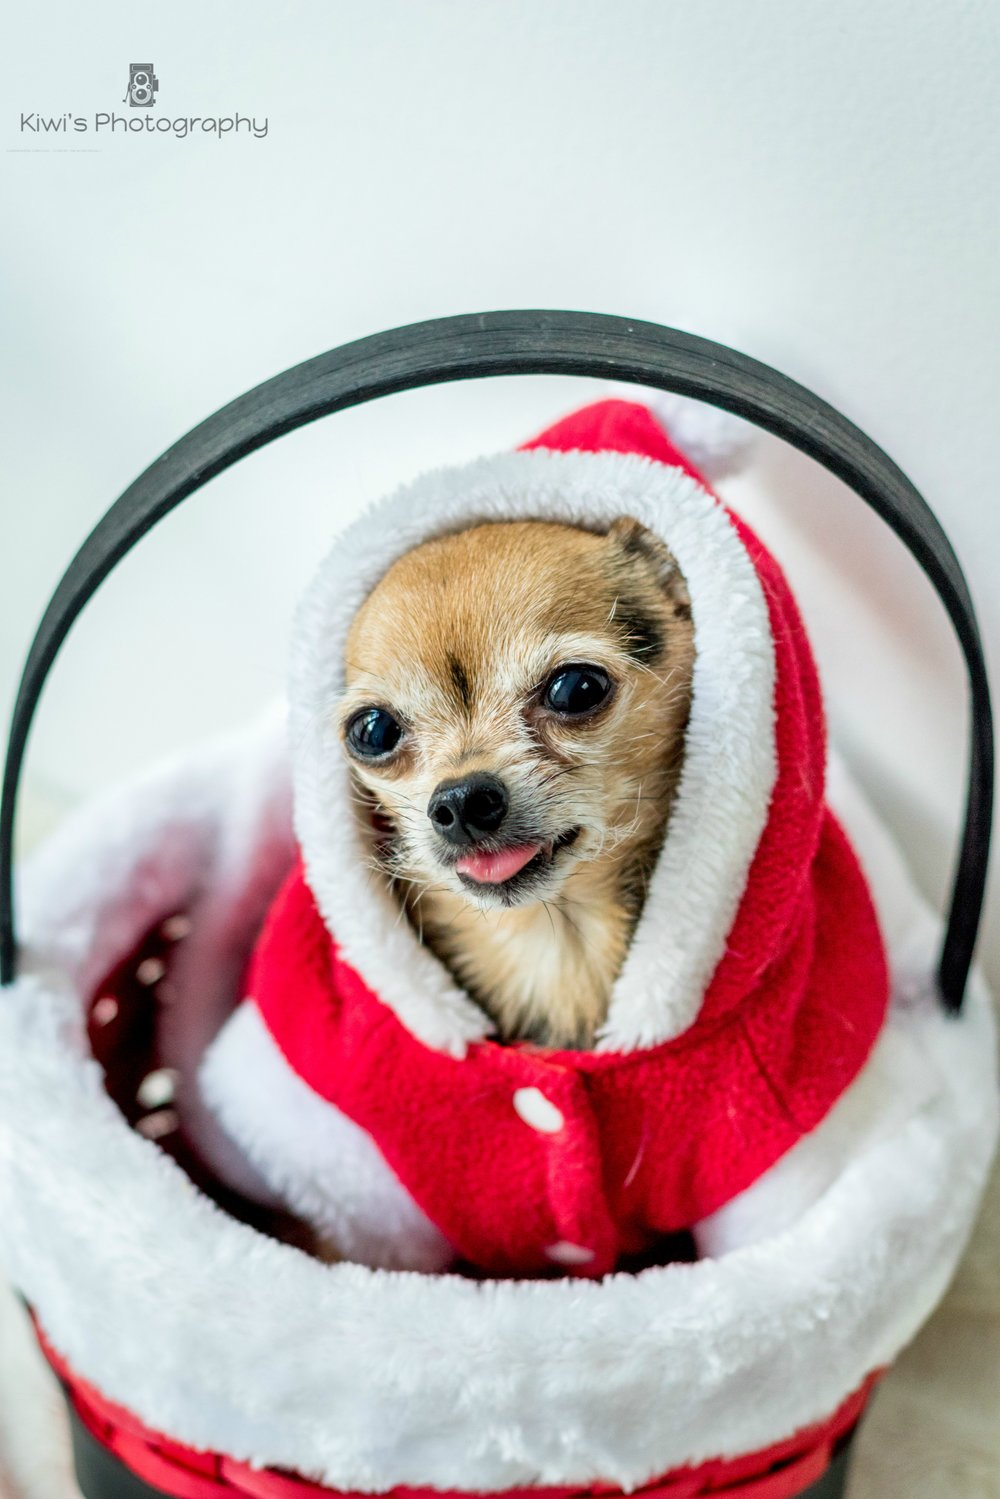 Chihuahua yorkie mix, Christmas costume dog, chorkie in Ottawa